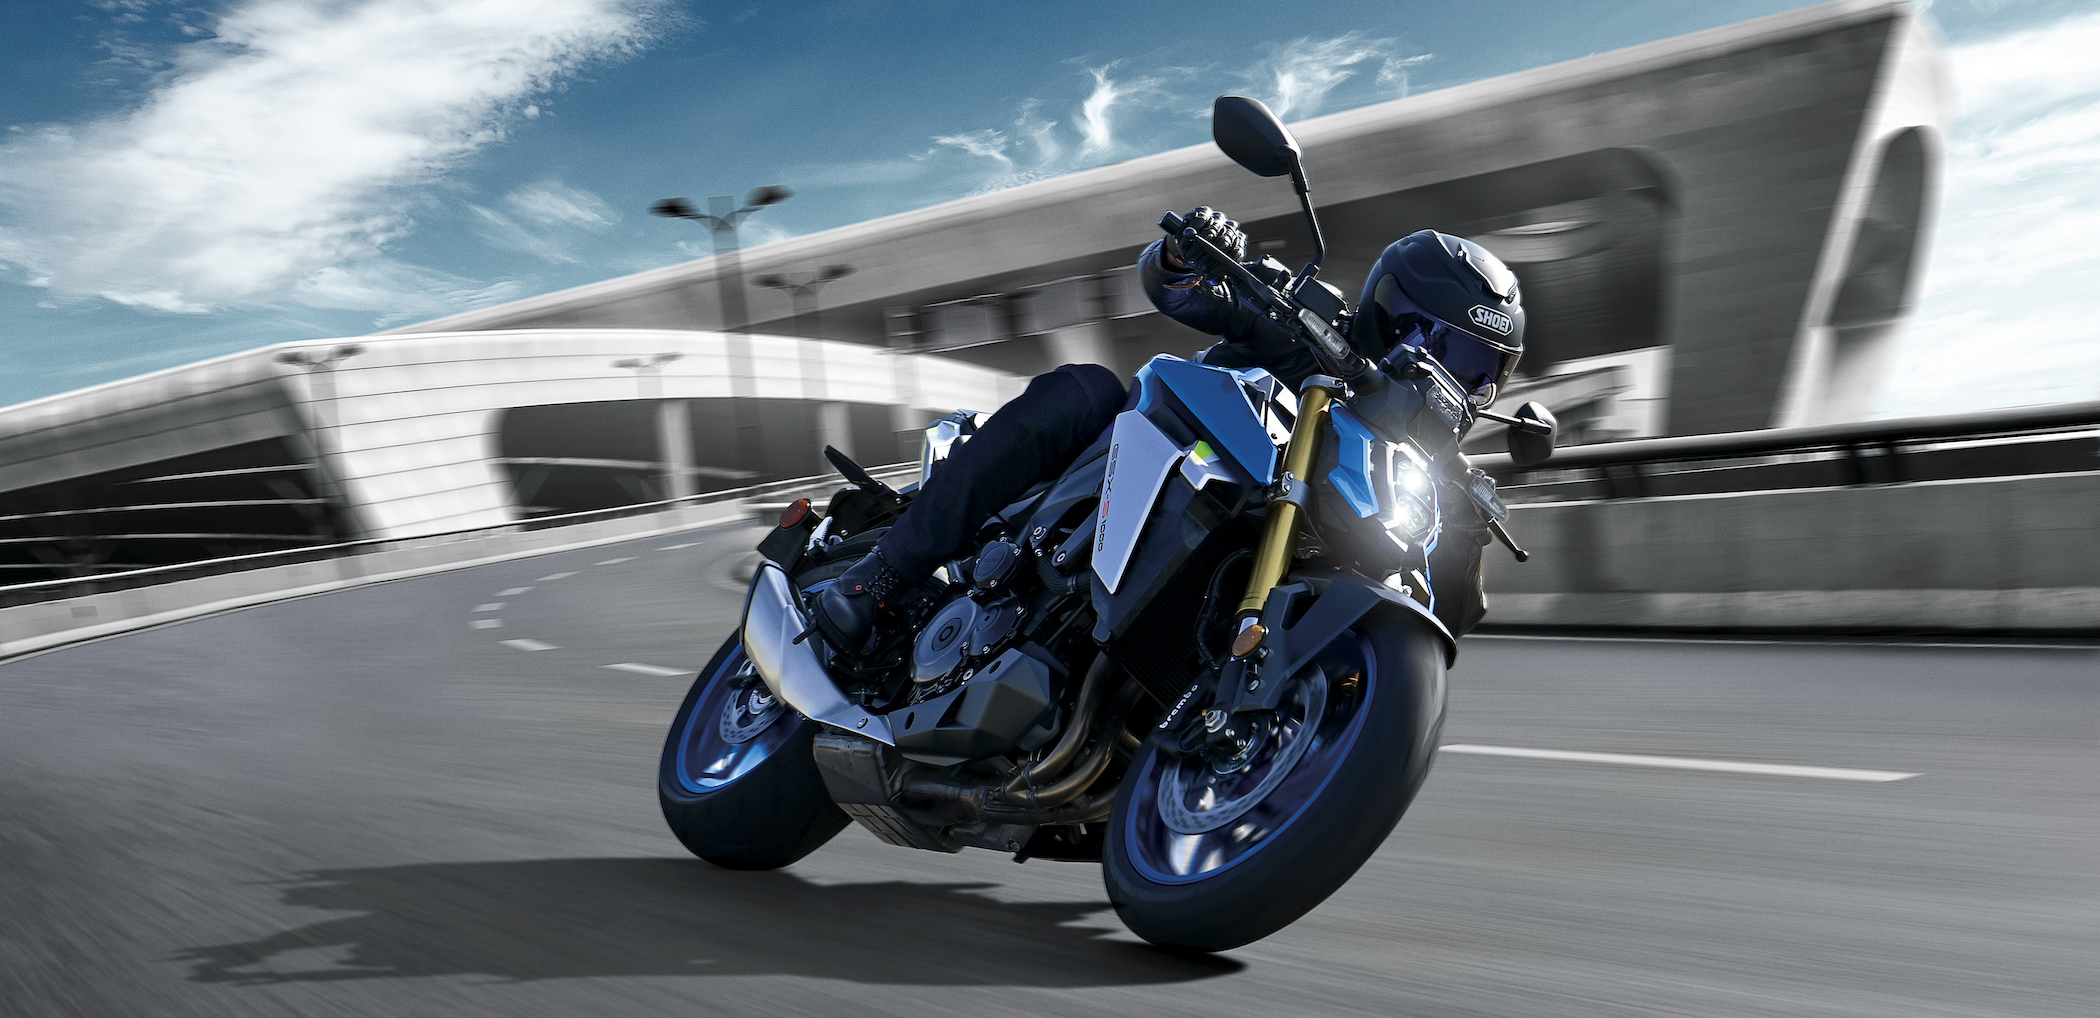 GSX-S1000's long stroke GSX-R derived engine has been refined to produce a broad, smooth torque curve with increased horsepower